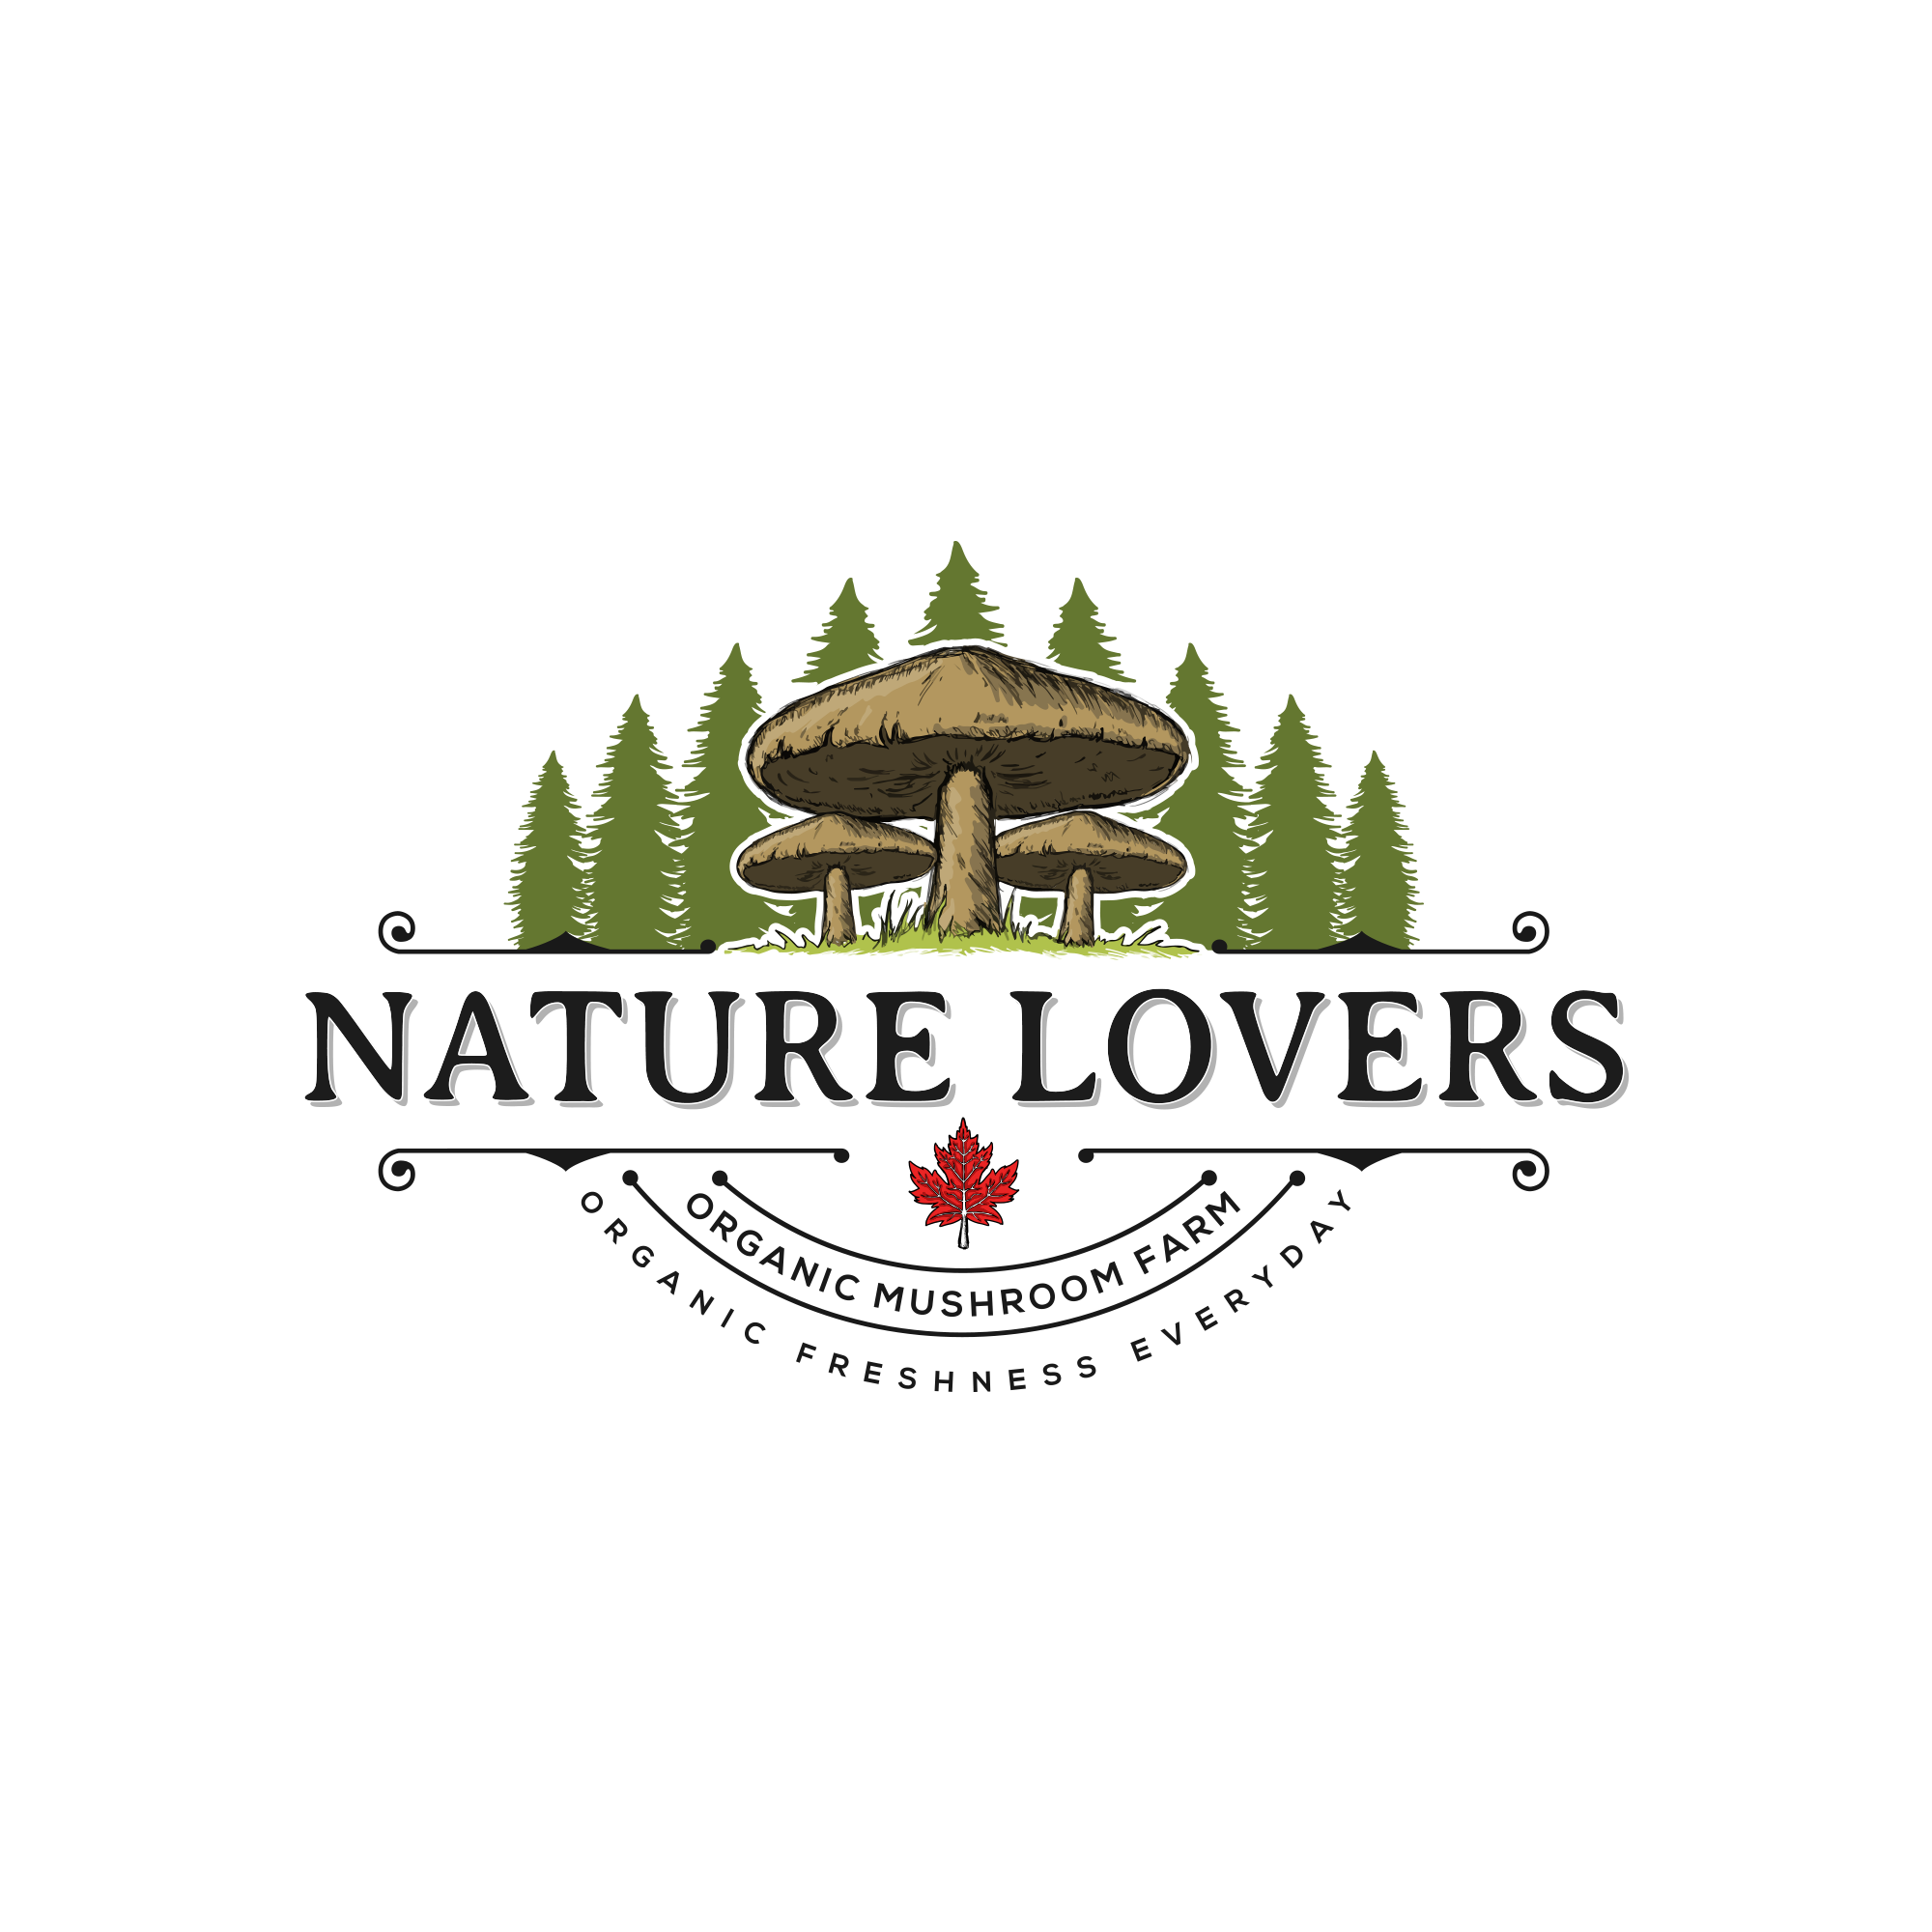 Nature Lovers needs a corporate logo - Specialty organic mushrooms